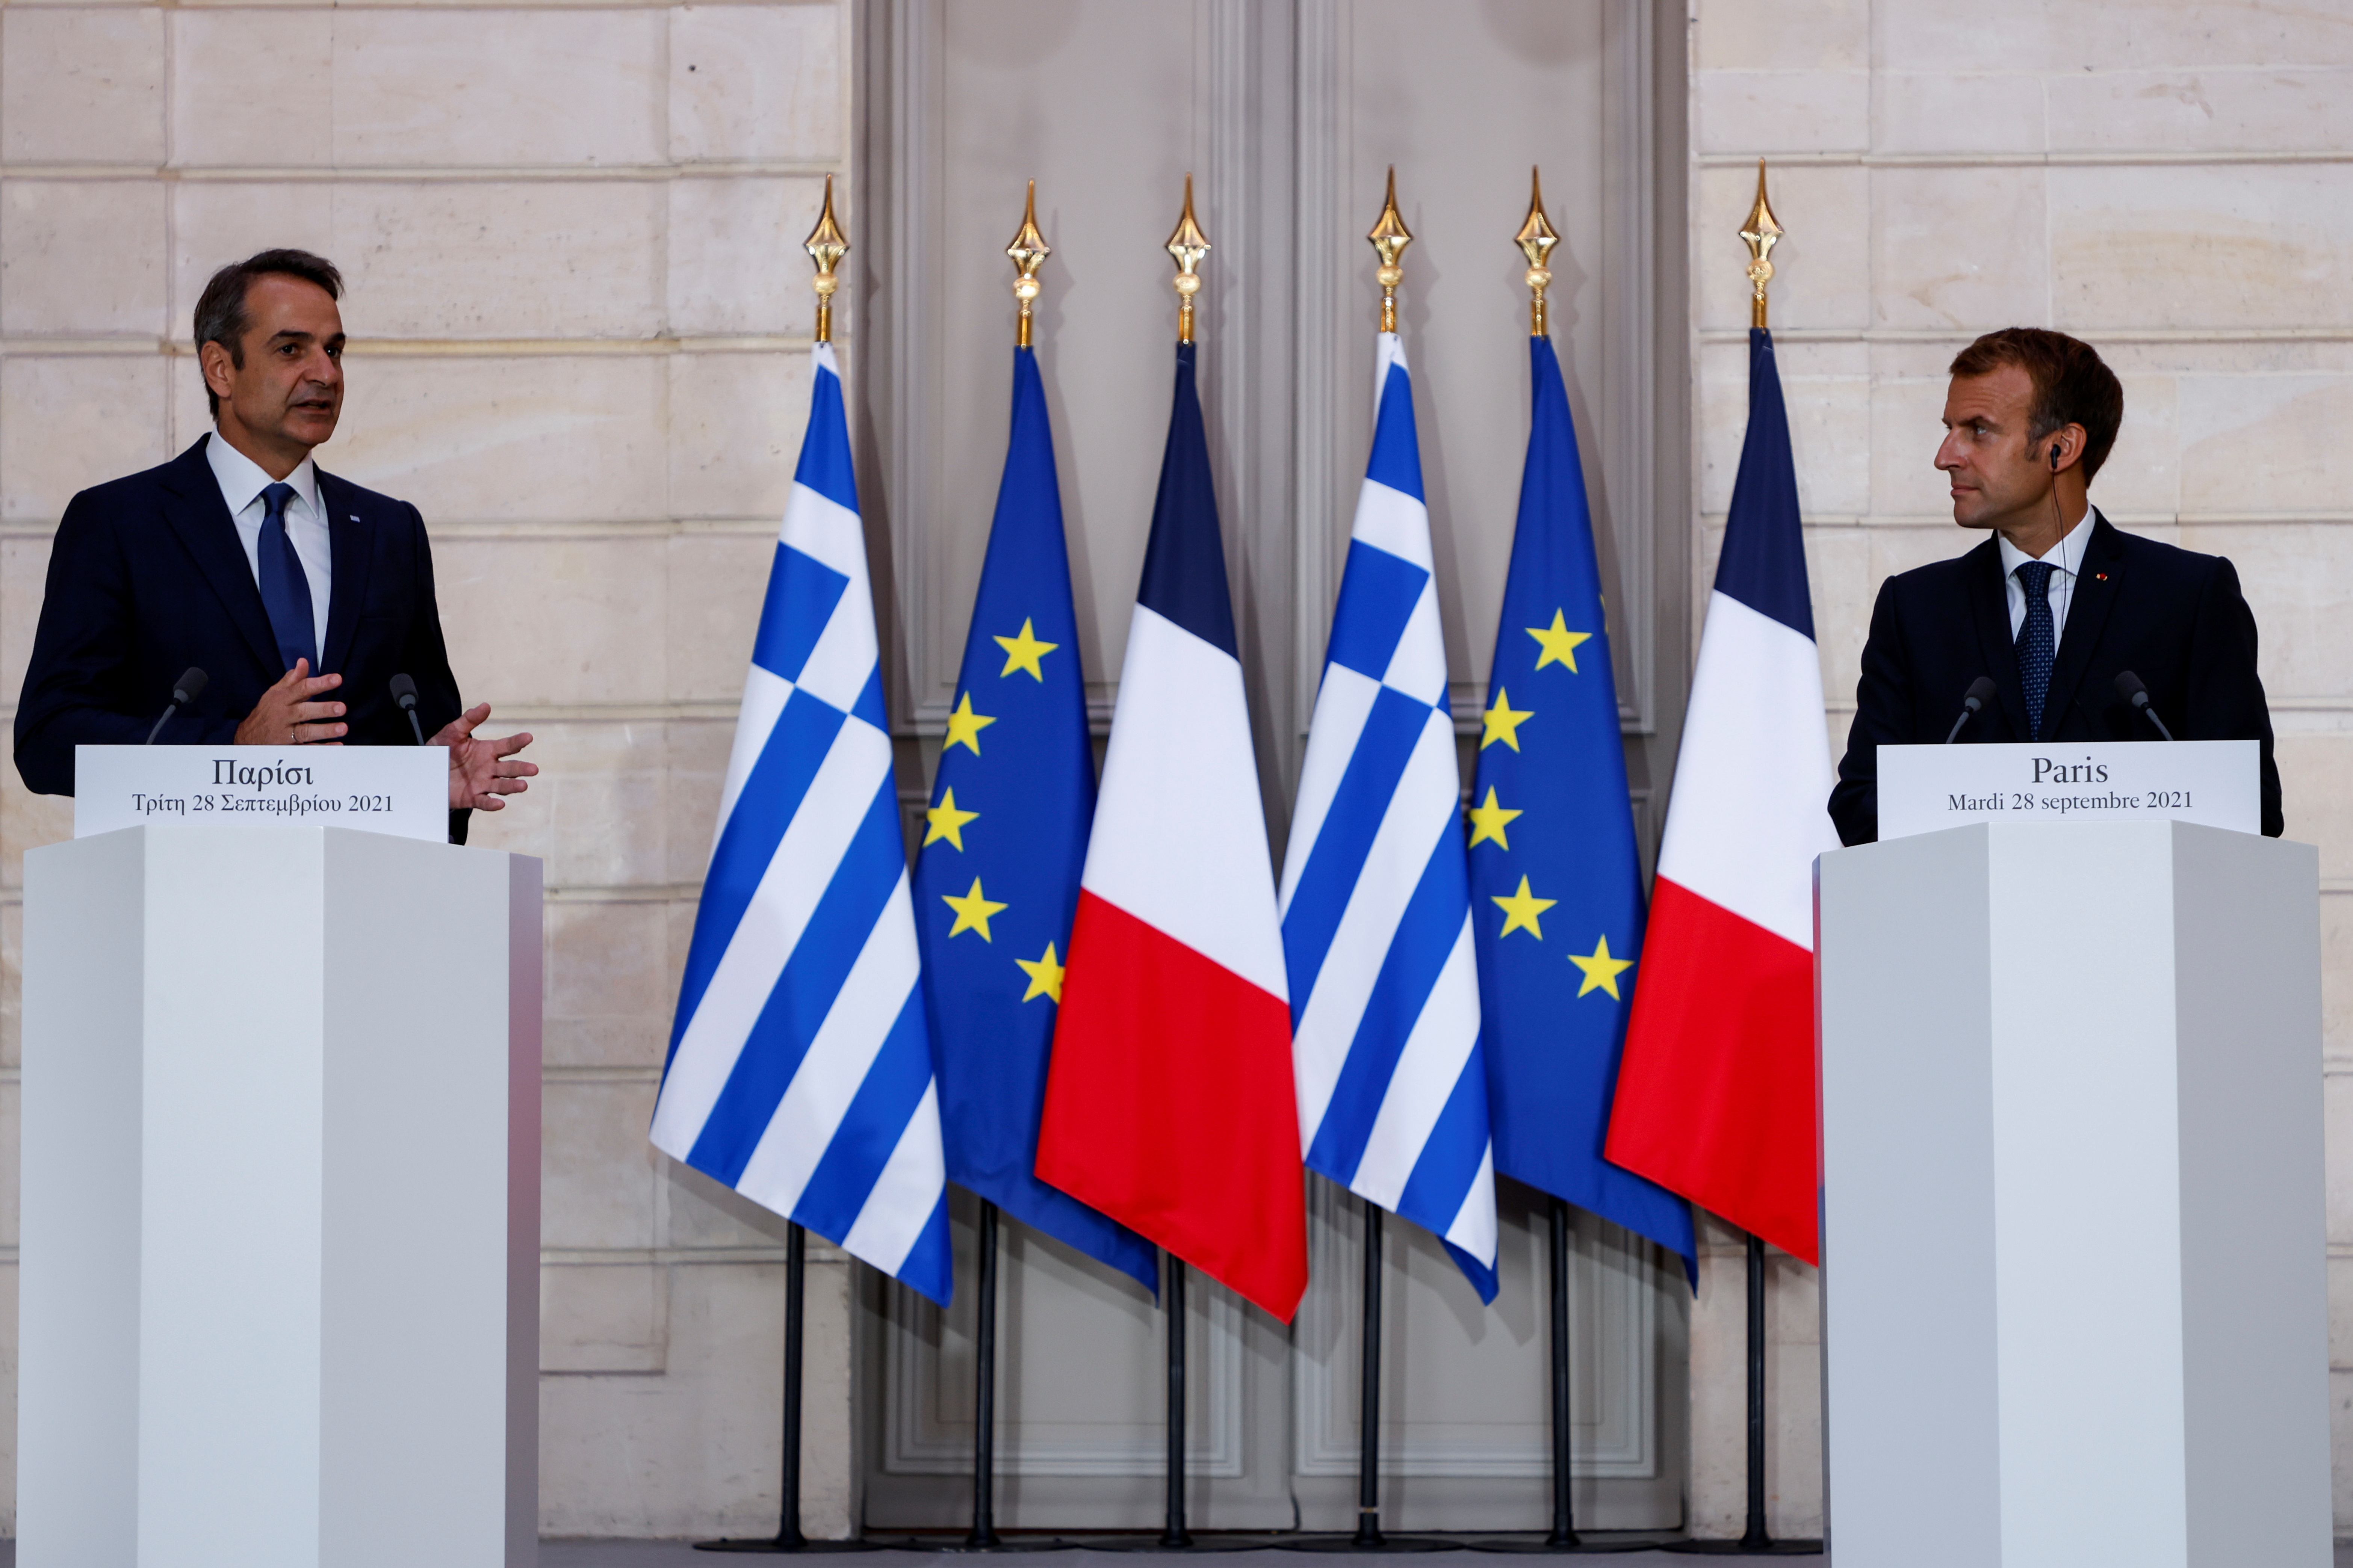 Greek Prime Minister Kyriakos Mitsotakis speaks as French President Emmanuel Macron listens on during a signing ceremony of a new defence deal at The Elysee Palace in Paris, France September 28, 2021. Ludovic Marin/Pool via REUTERS